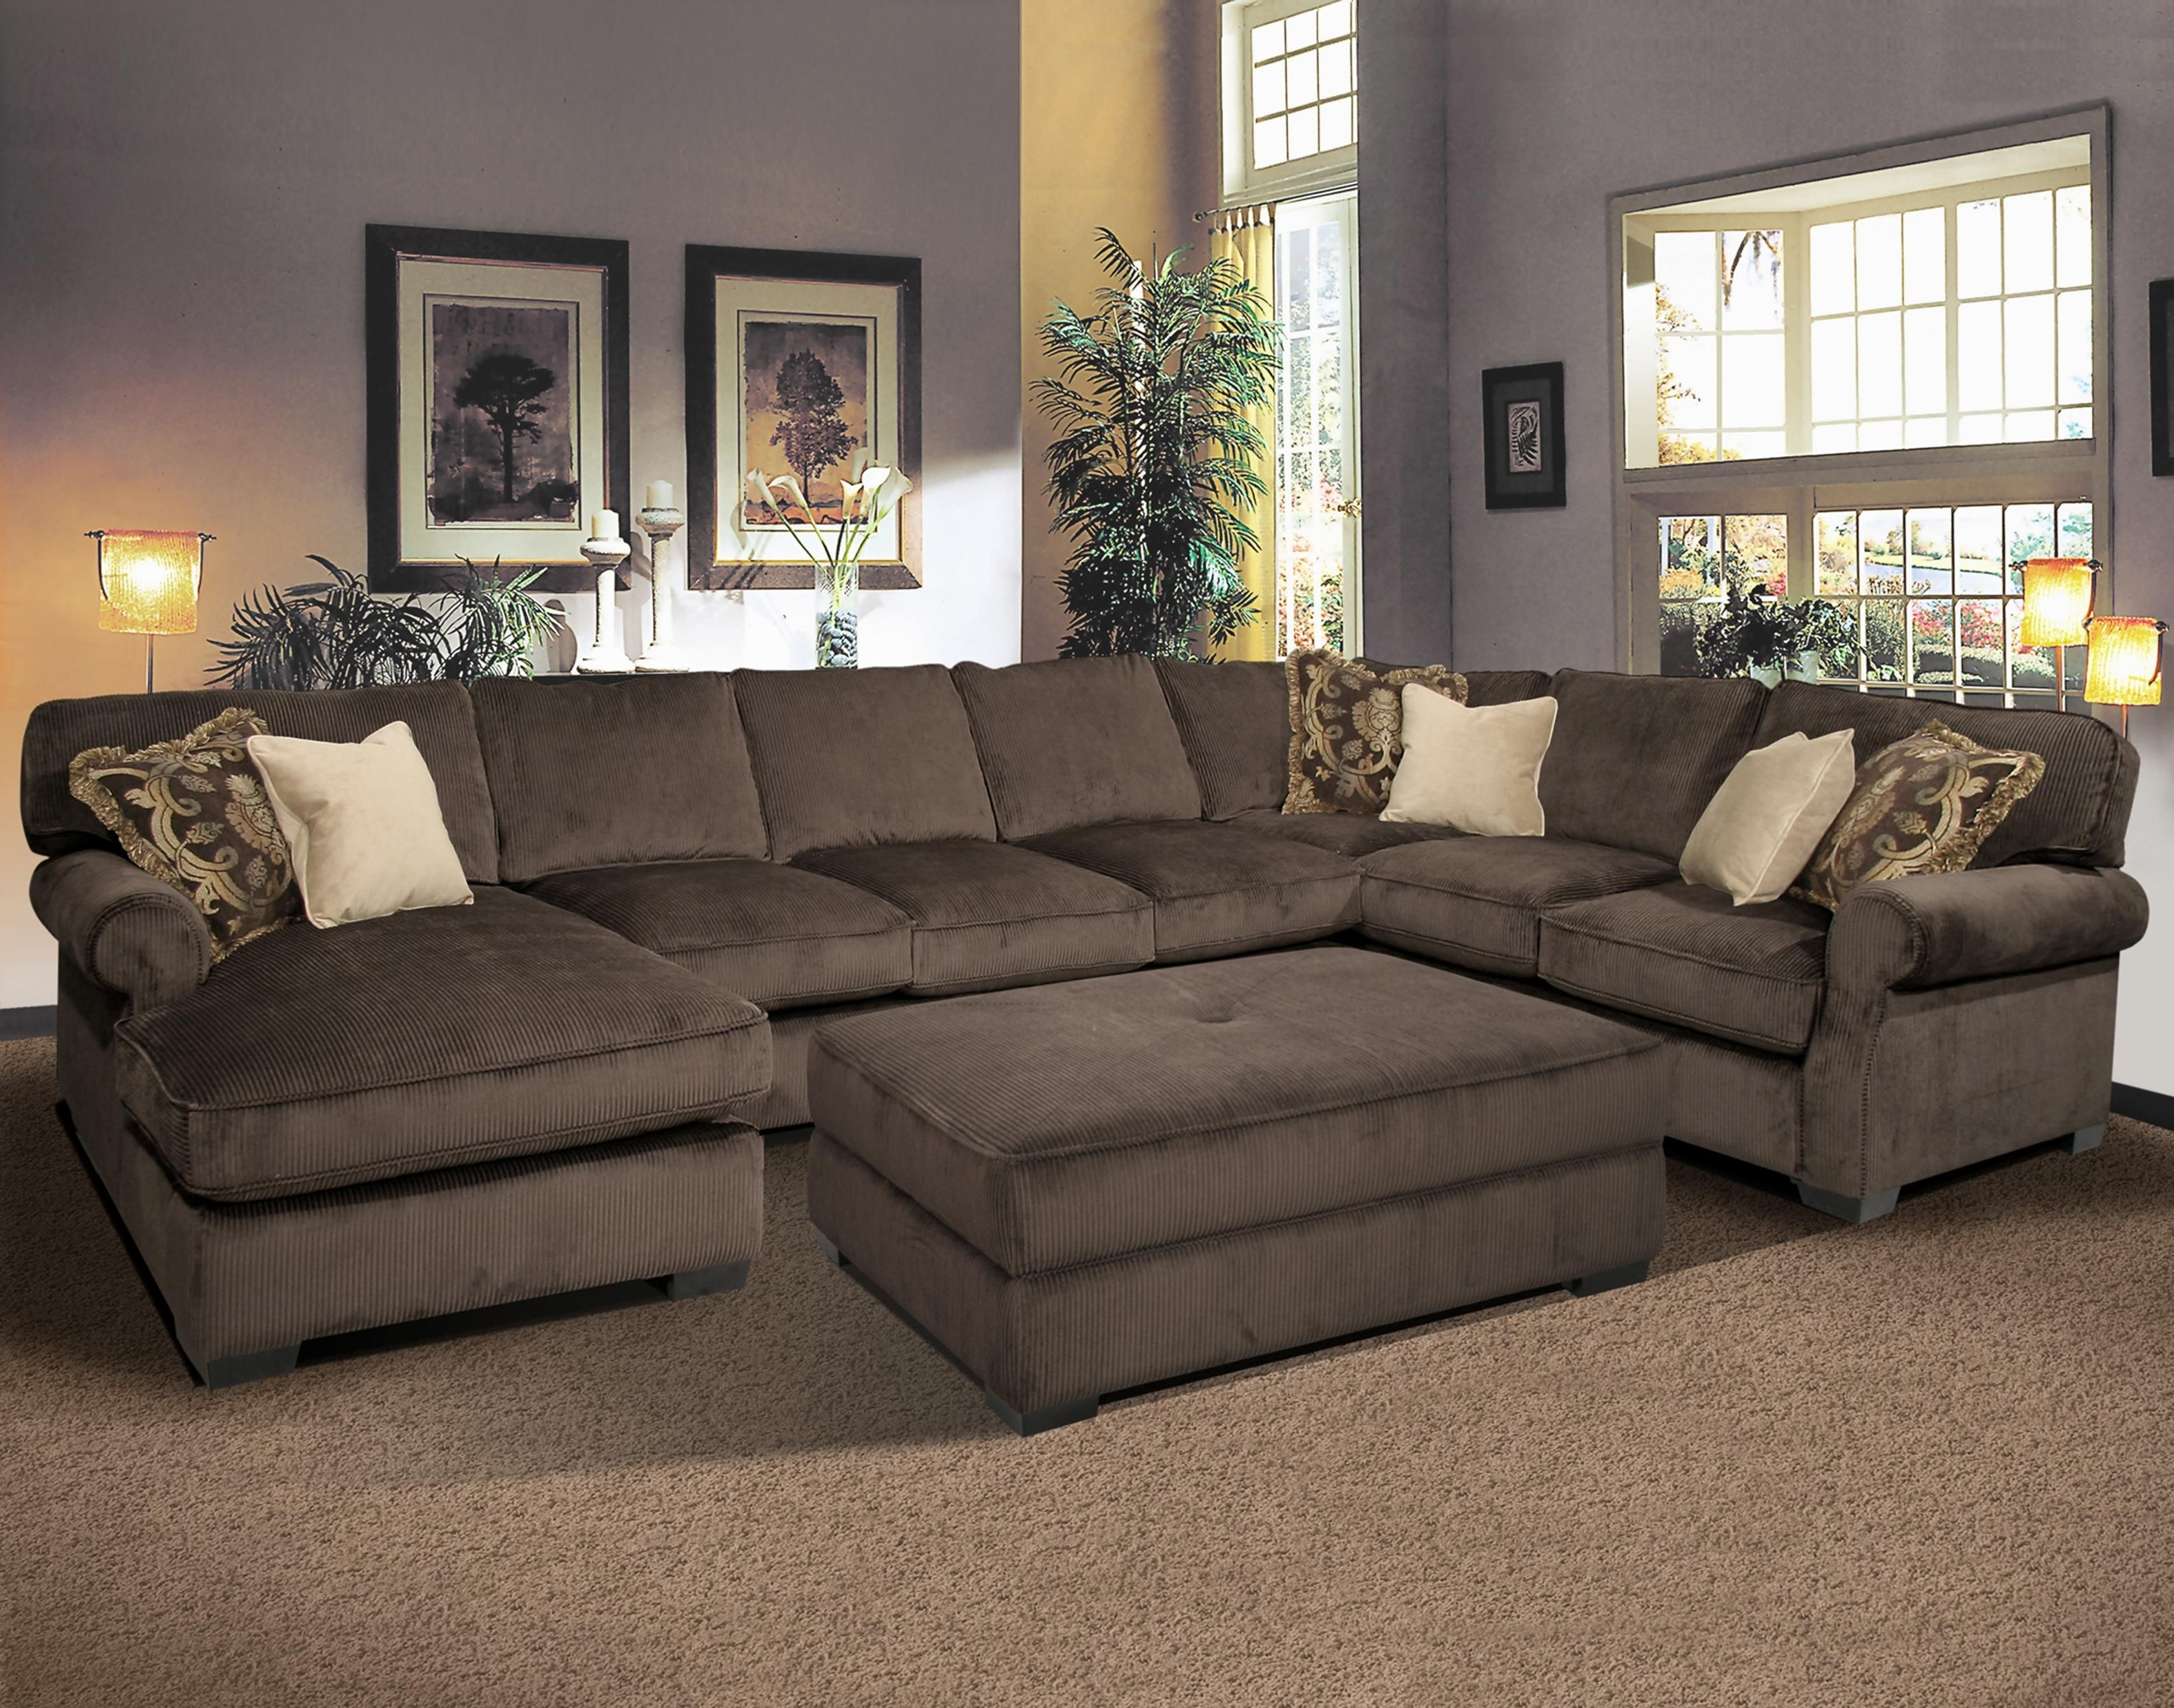 Famous Big And Comfy Grand Island Large, 7 Seat Sectional Sofa With Right With Eco Friendly Sectional Sofas (View 18 of 20)